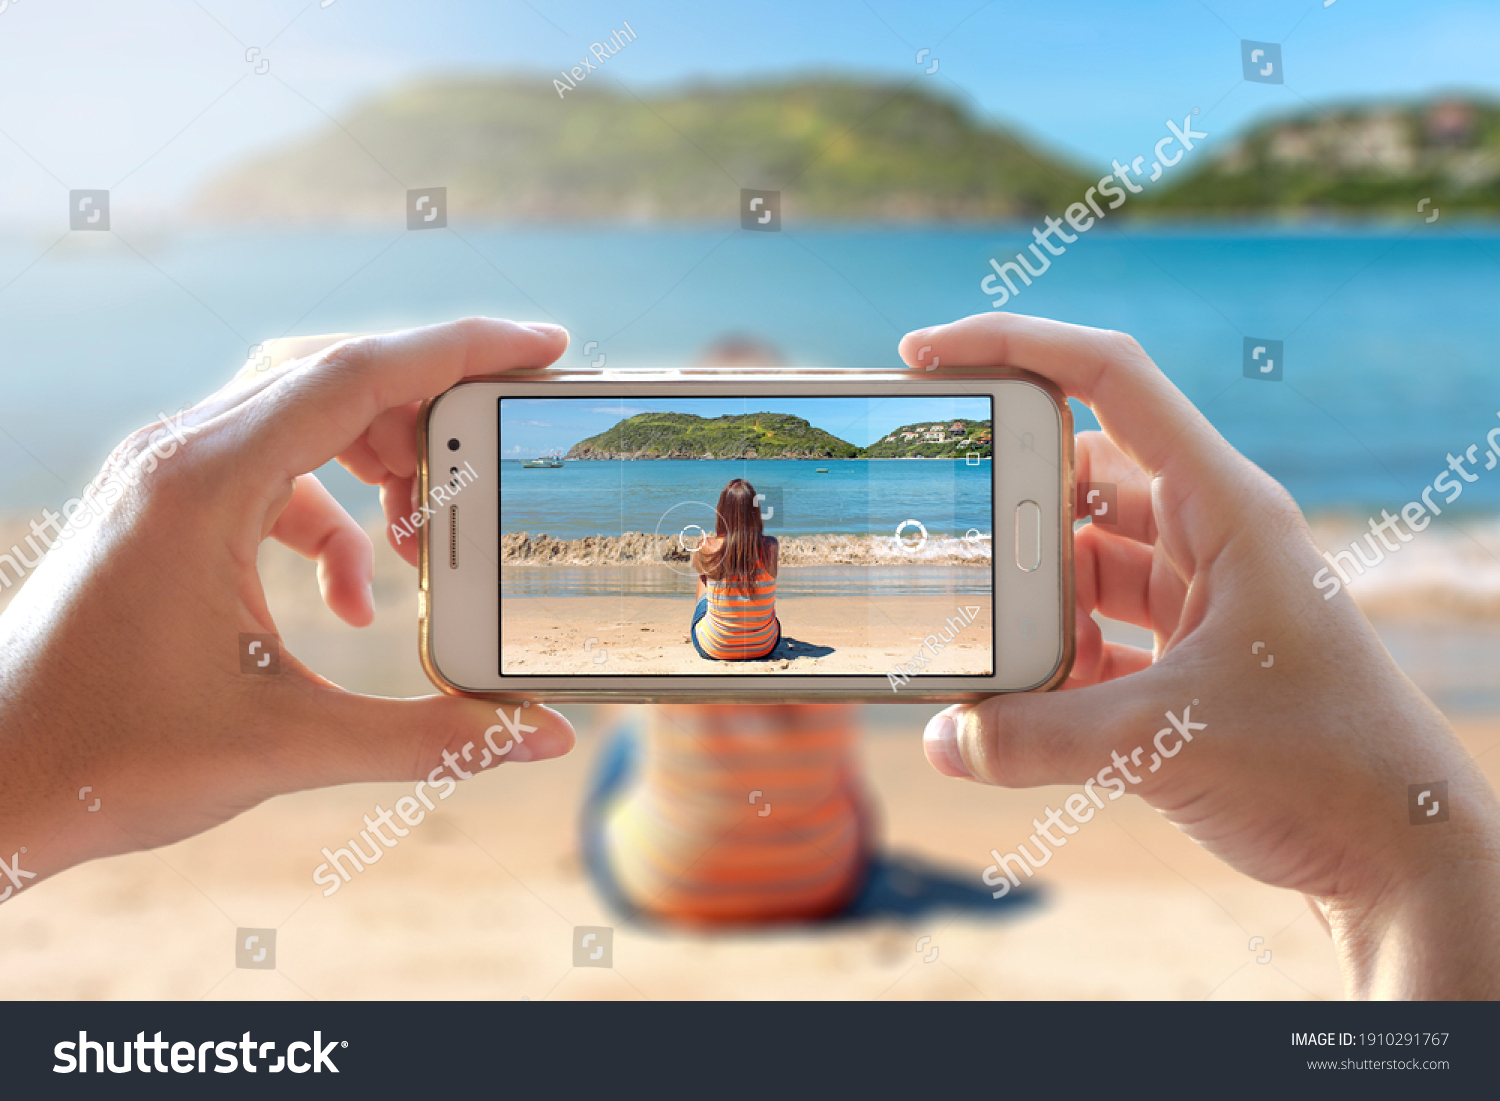 Woman photographing other girl sitting in the beach. She is using to take a photo the camera of a smartphone. A person photographing her friend with a cell phone. #1910291767